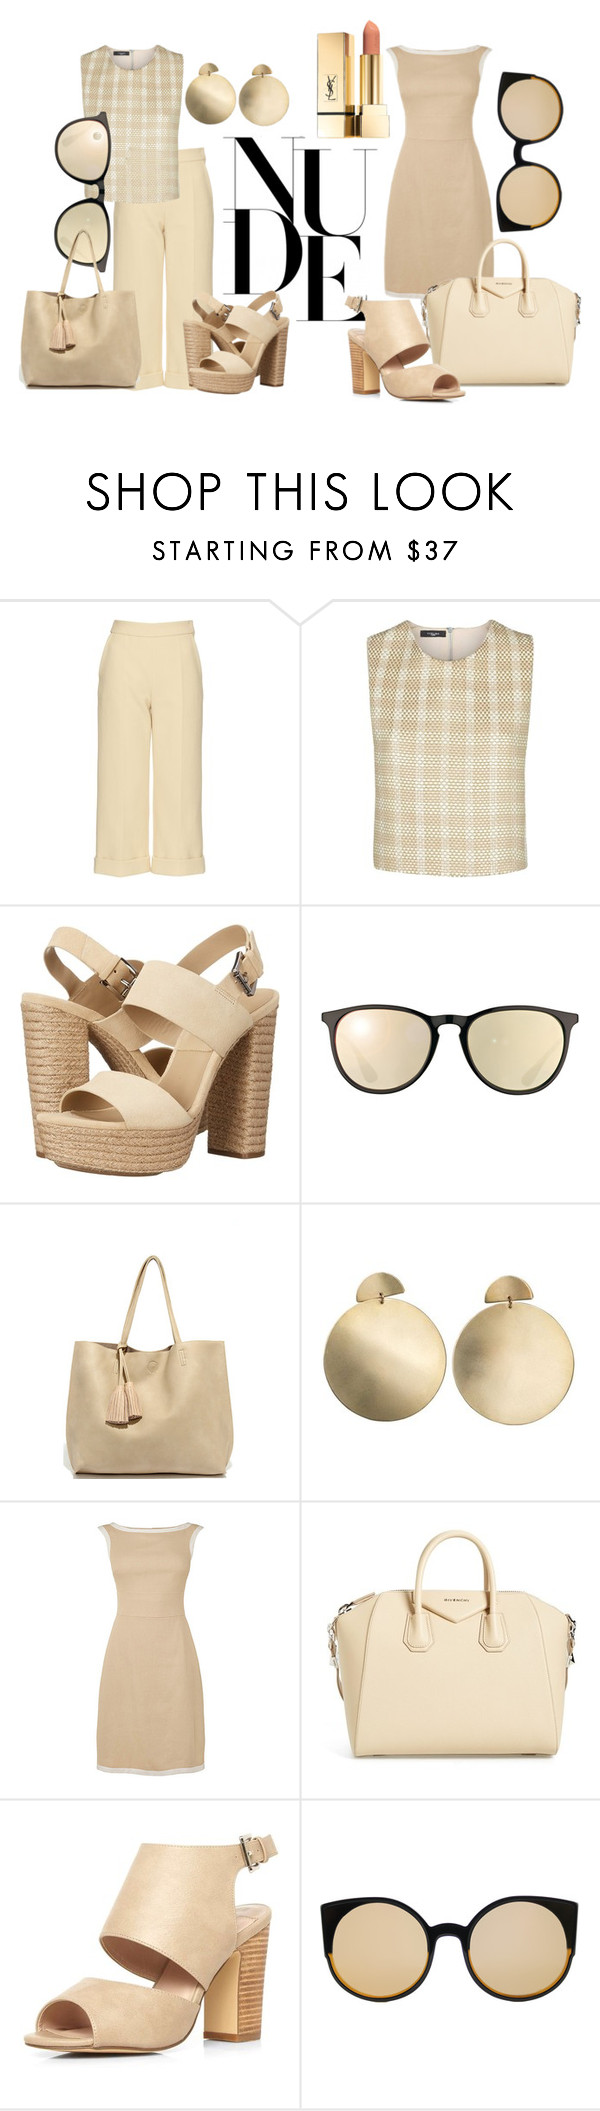 """""""Nudes"""" by pinklover-1609 ❤ liked on Polyvore featuring Delpozo, Vielma London, Michael Kors, Ray-Ban, LULUS, Zimmermann, Givenchy, Dorothy Perkins, RetroSuperFuture and love"""